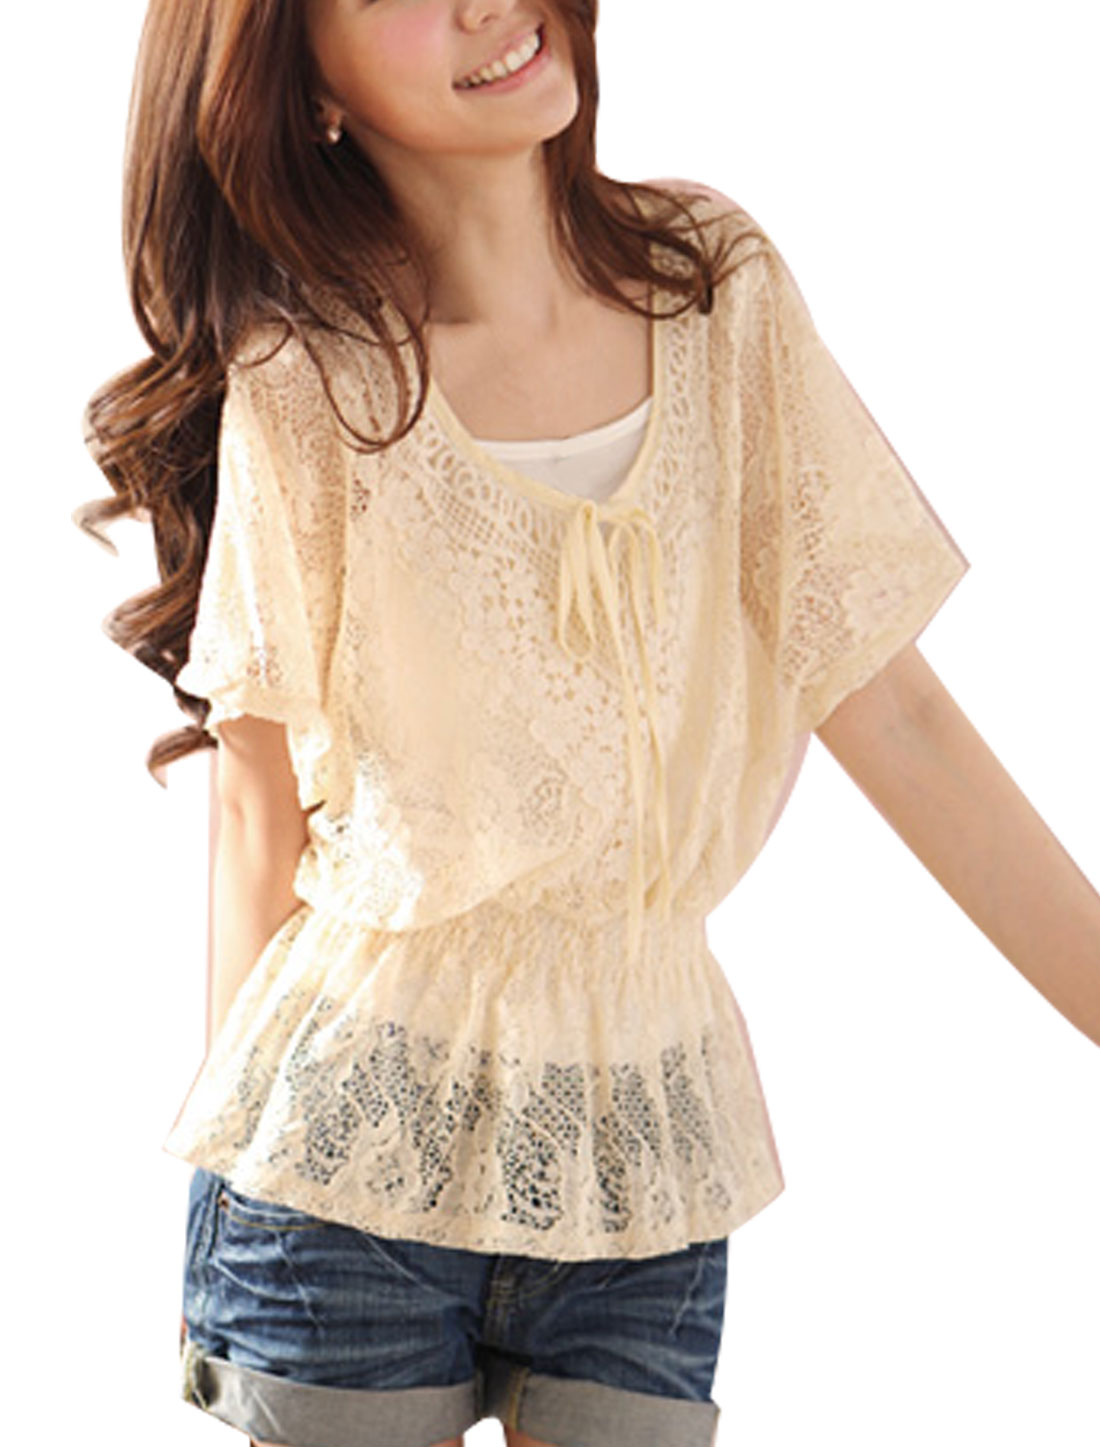 Lady Beige Sheer Floral Lace Blouse w White Tank Top XS